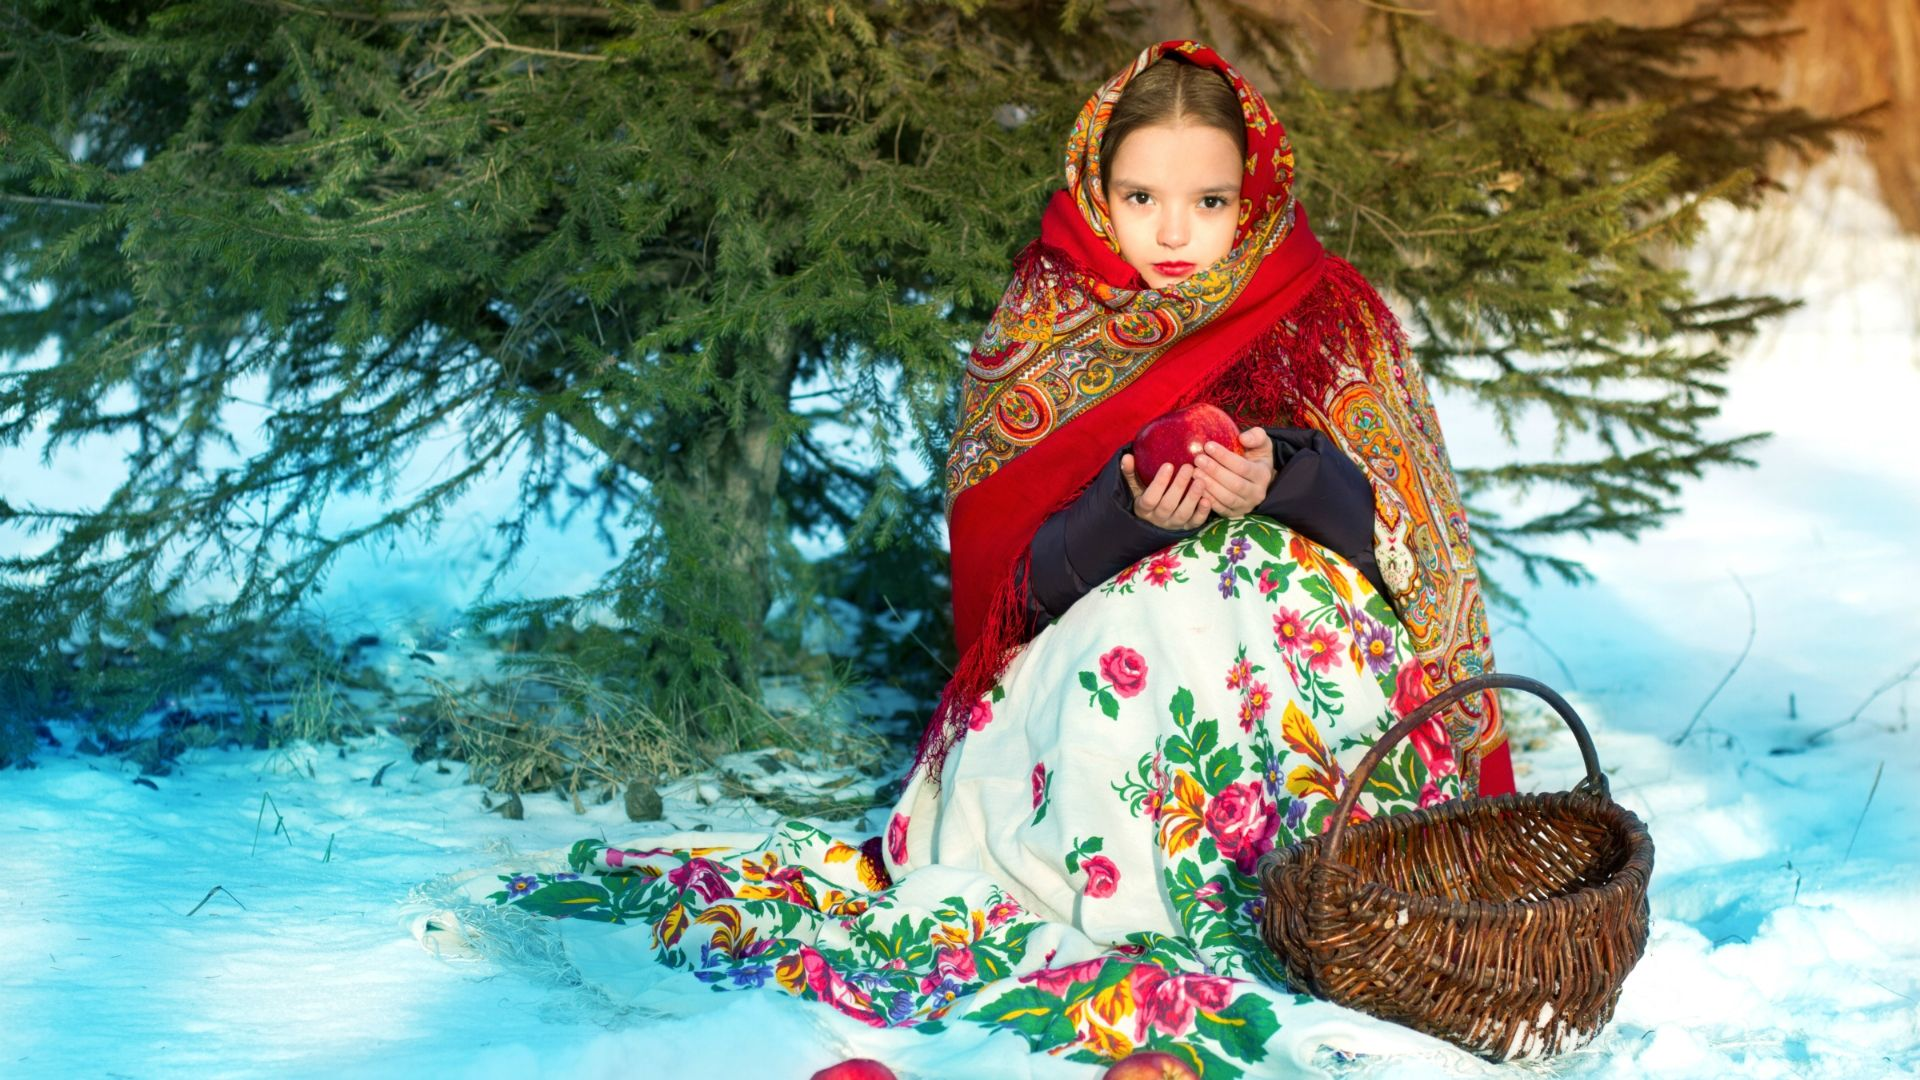 1920x1080 Young Russian beauty wallpapers and images - wallpapers, pictures ...